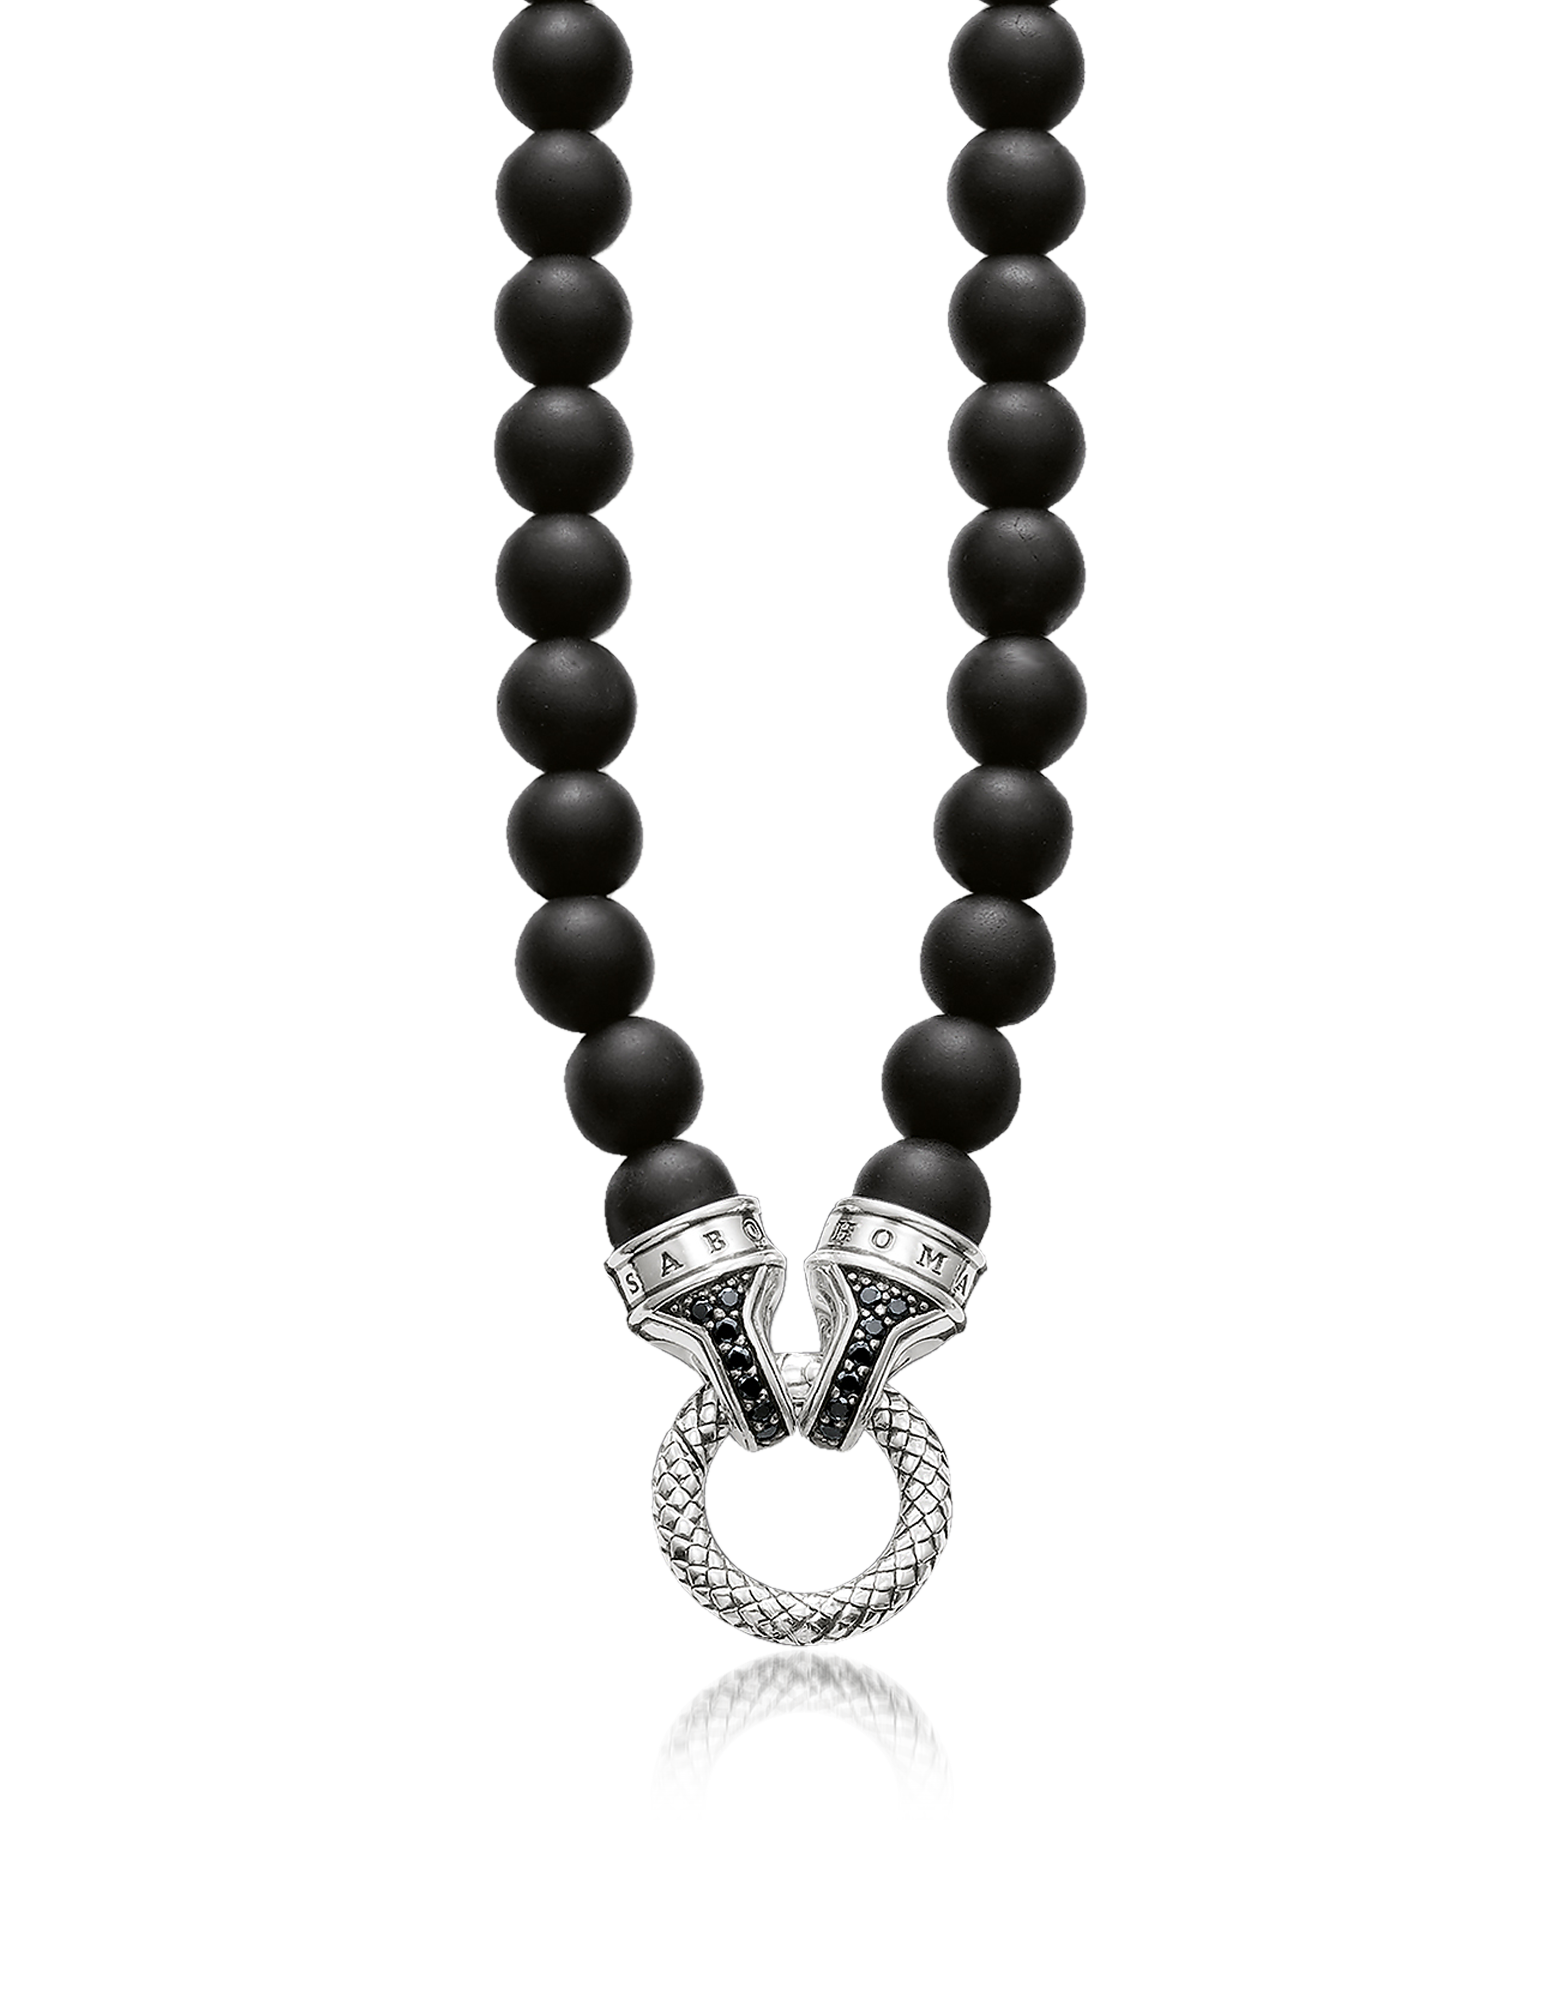 Image of Blackened Sterling Silver and Obsidian Beads Men's Necklace w/Black Zirconia